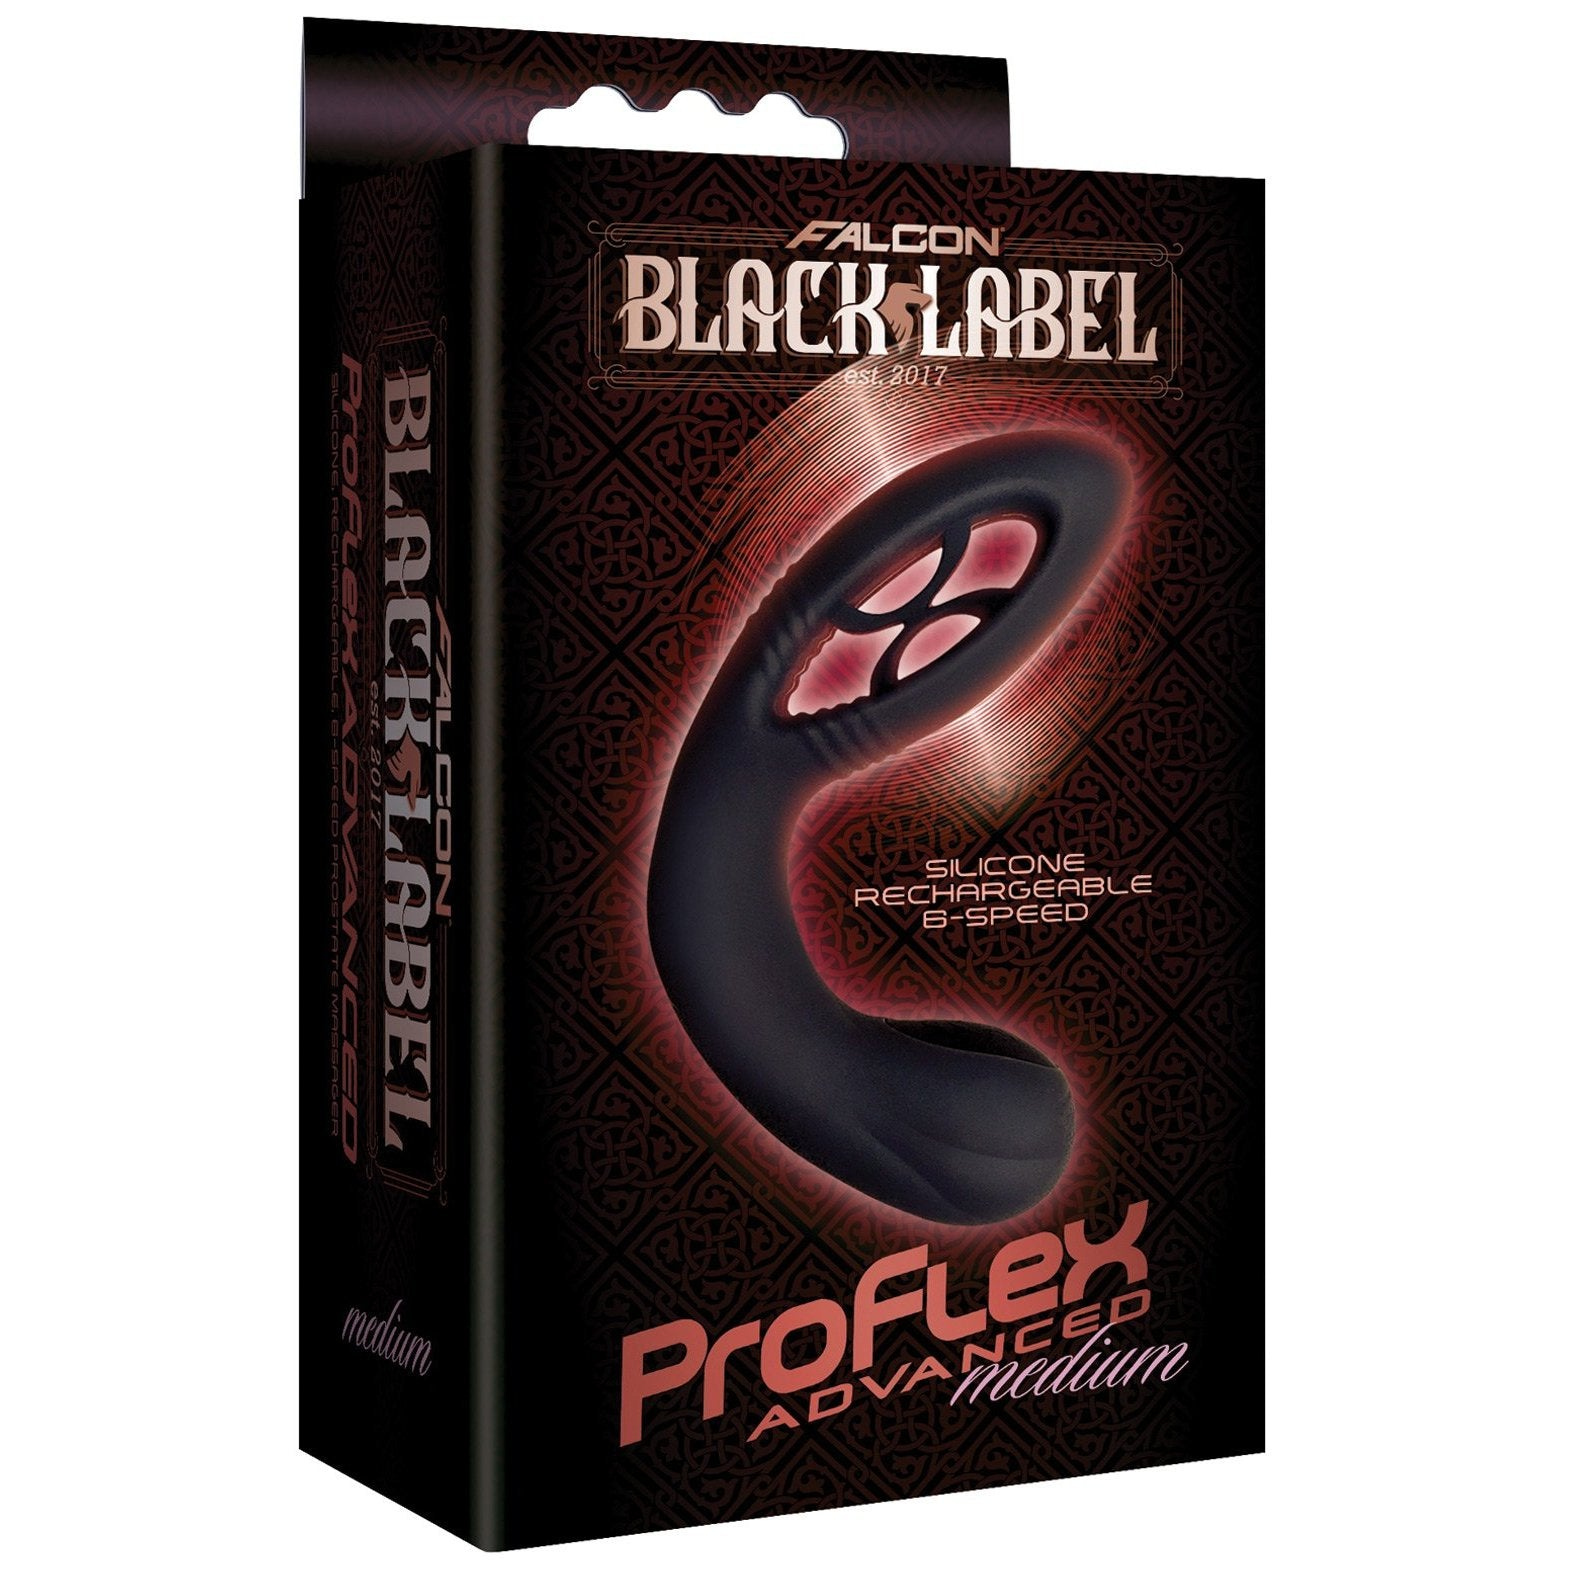 Falcon ProFlex Advanced Rechargeable Prostate Plug - Gay Men's Sex Toys - Adam's Toy Box